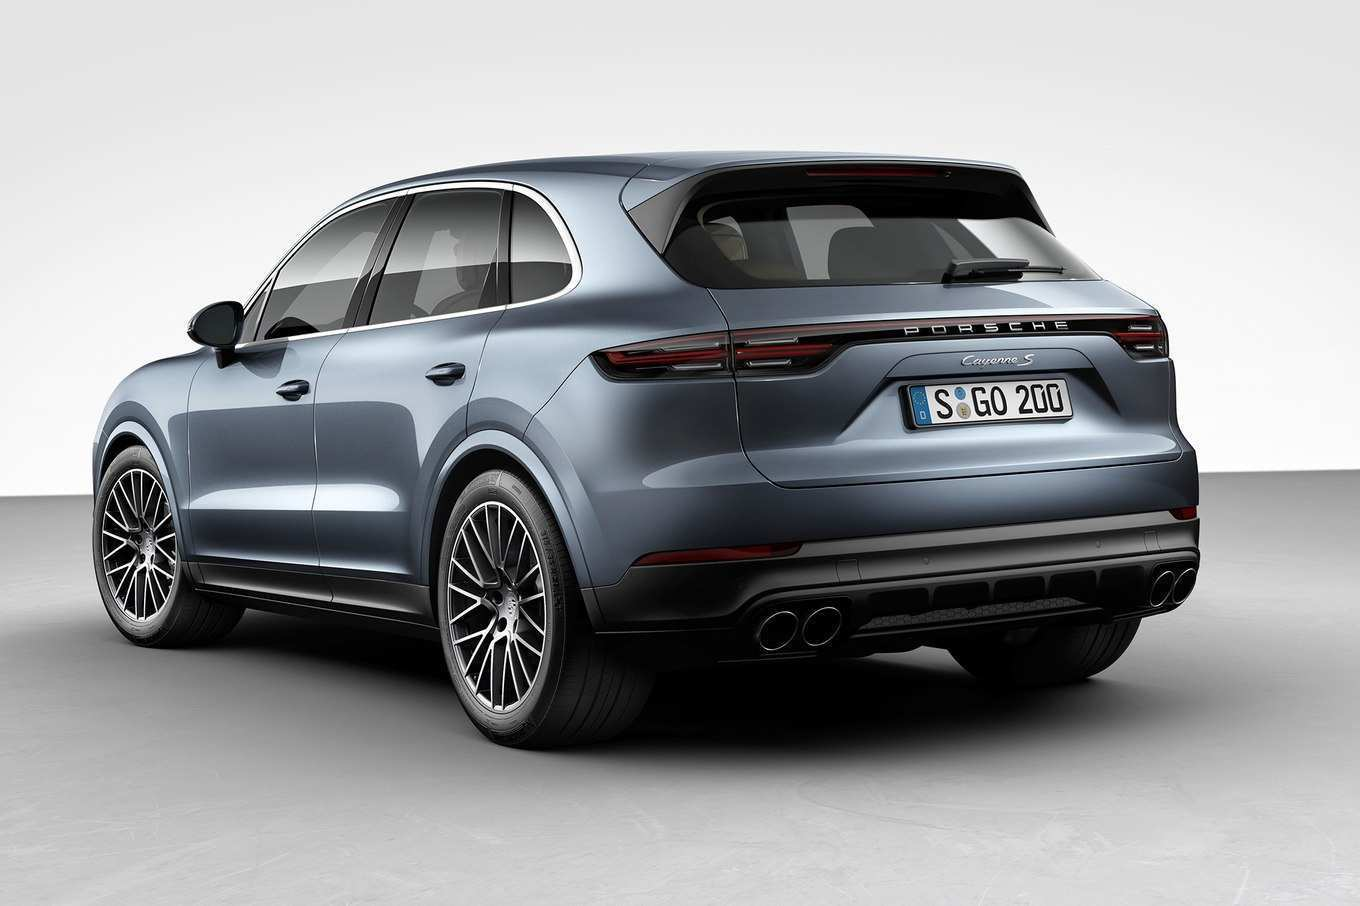 41 All New 2019 Porsche Cayenne First Look Rumors with 2019 Porsche Cayenne First Look